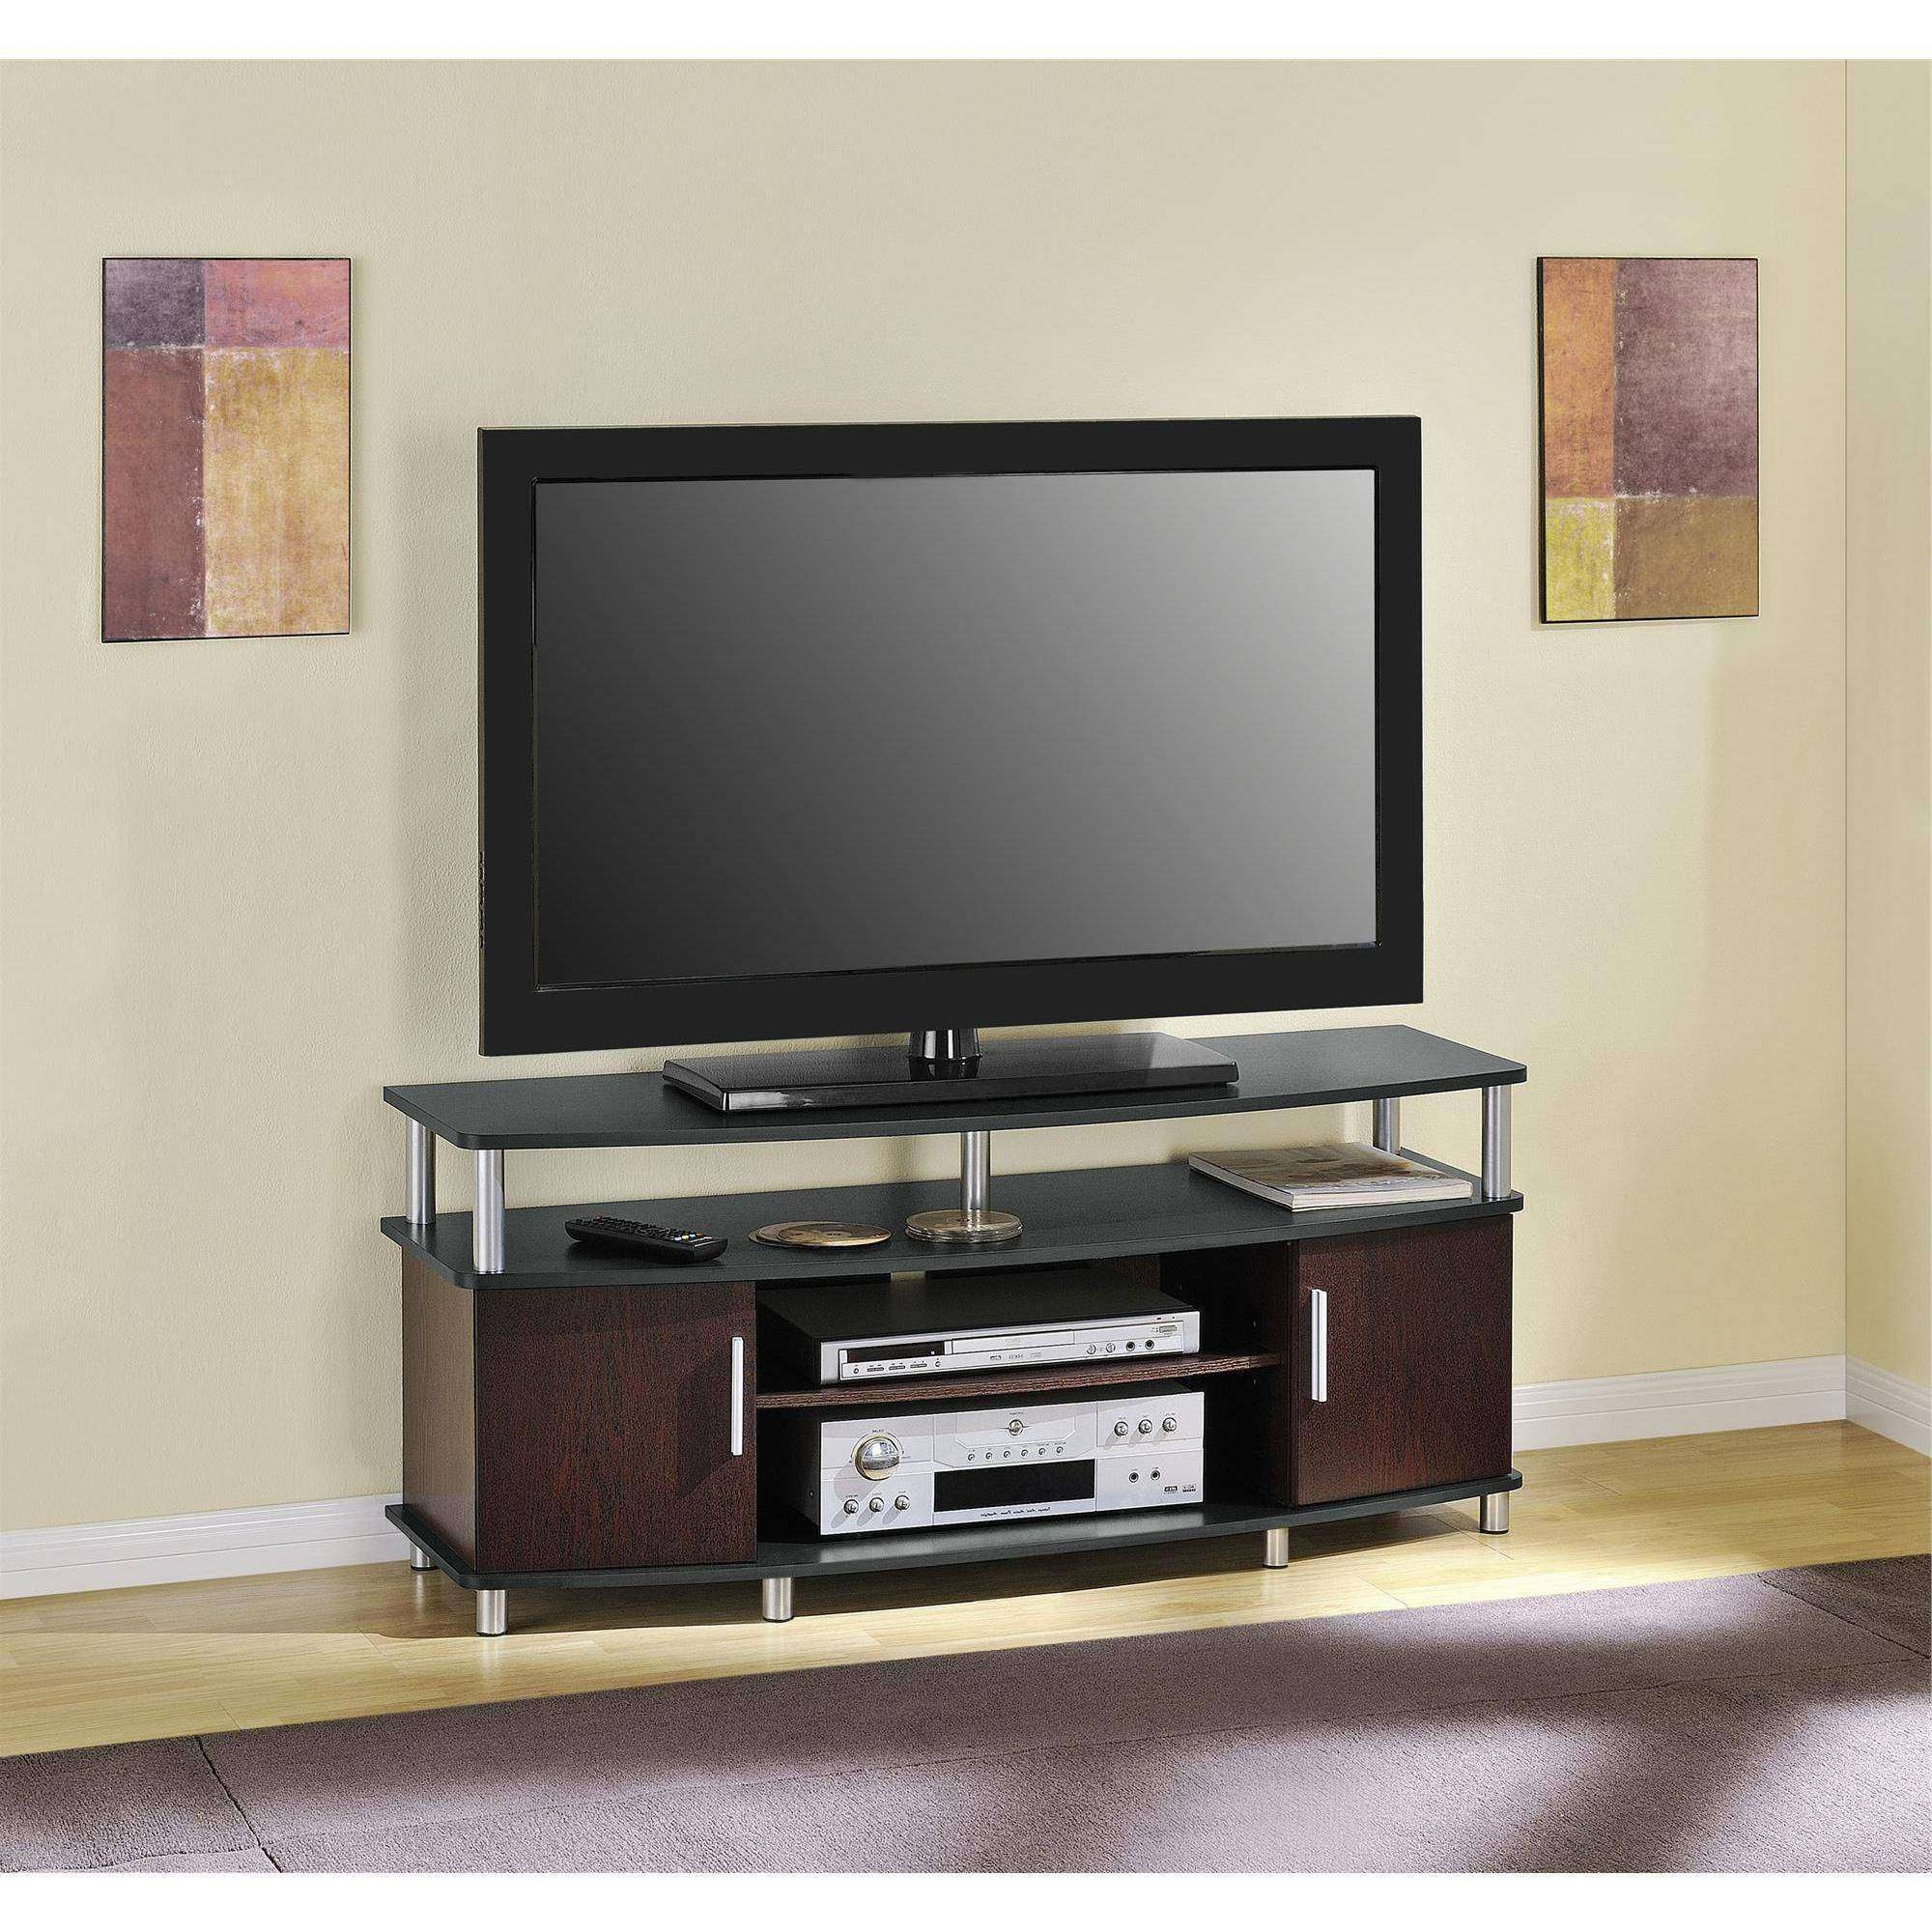 Perfect Corner Tv Stands For 50 Inch Tv 19 For Simple Home Regarding Corner Tv Stands For 50 Inch Tv (View 12 of 20)